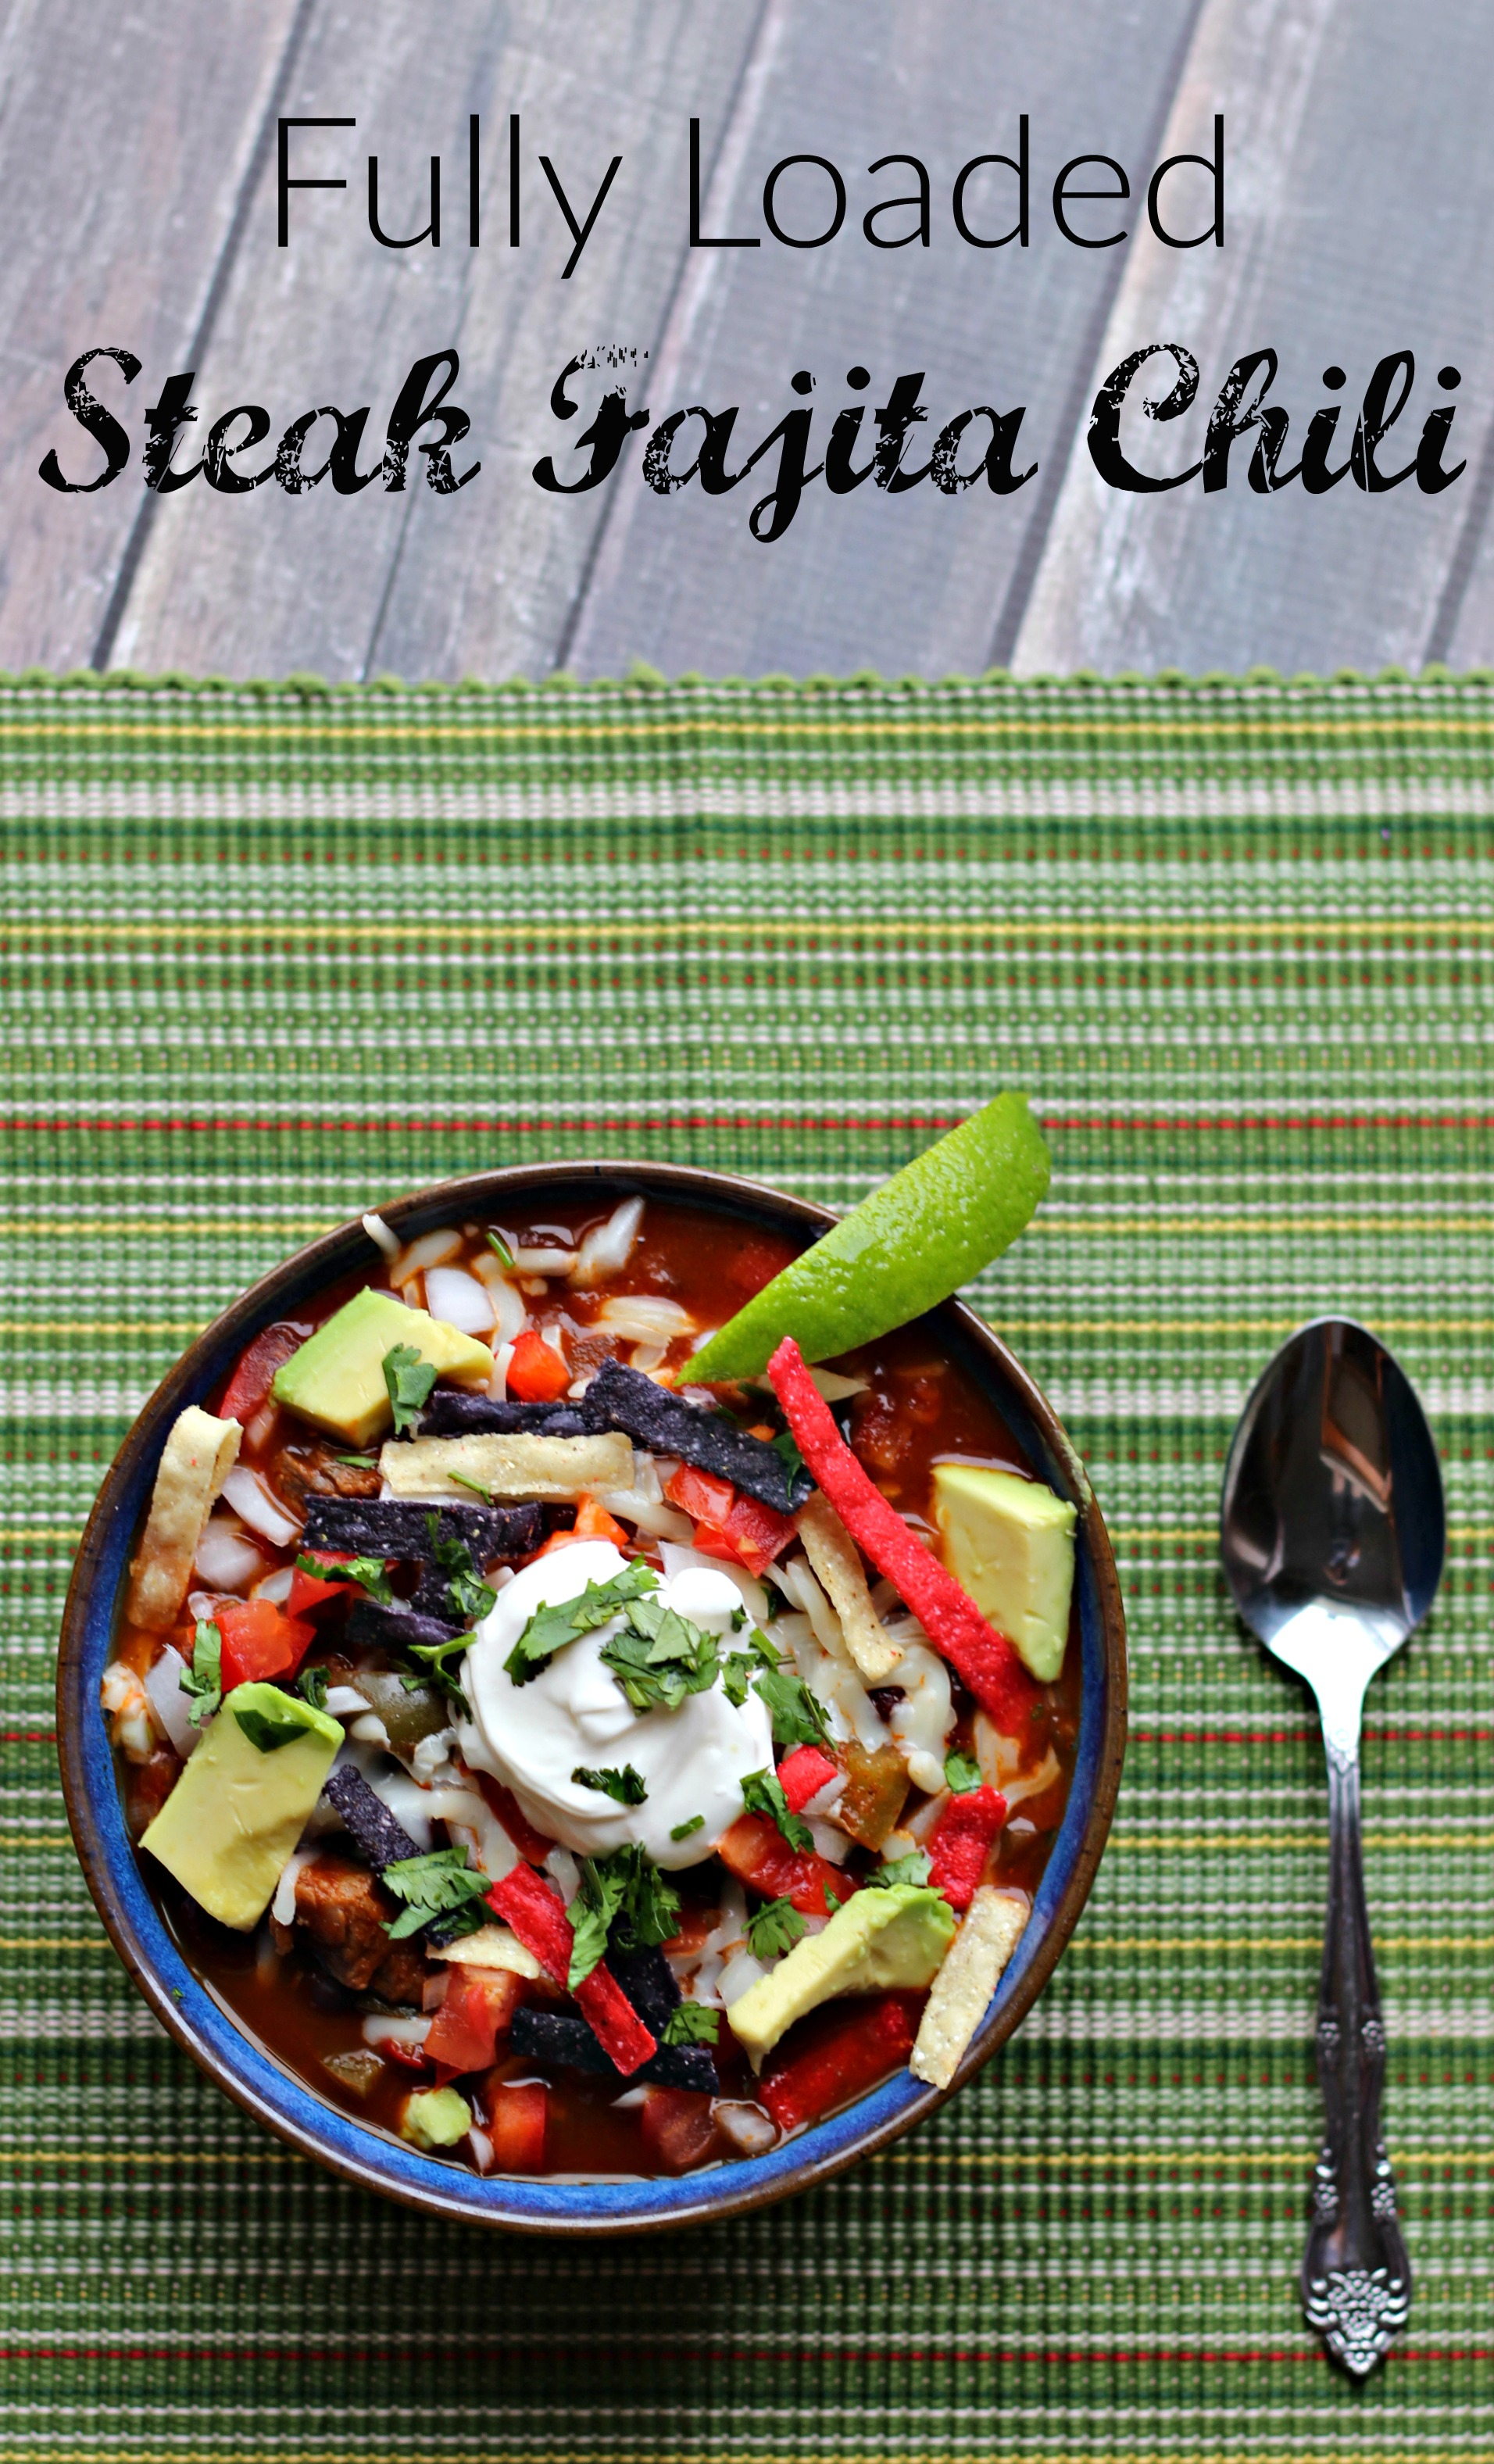 Fully Loaded Steak Fajita Chili